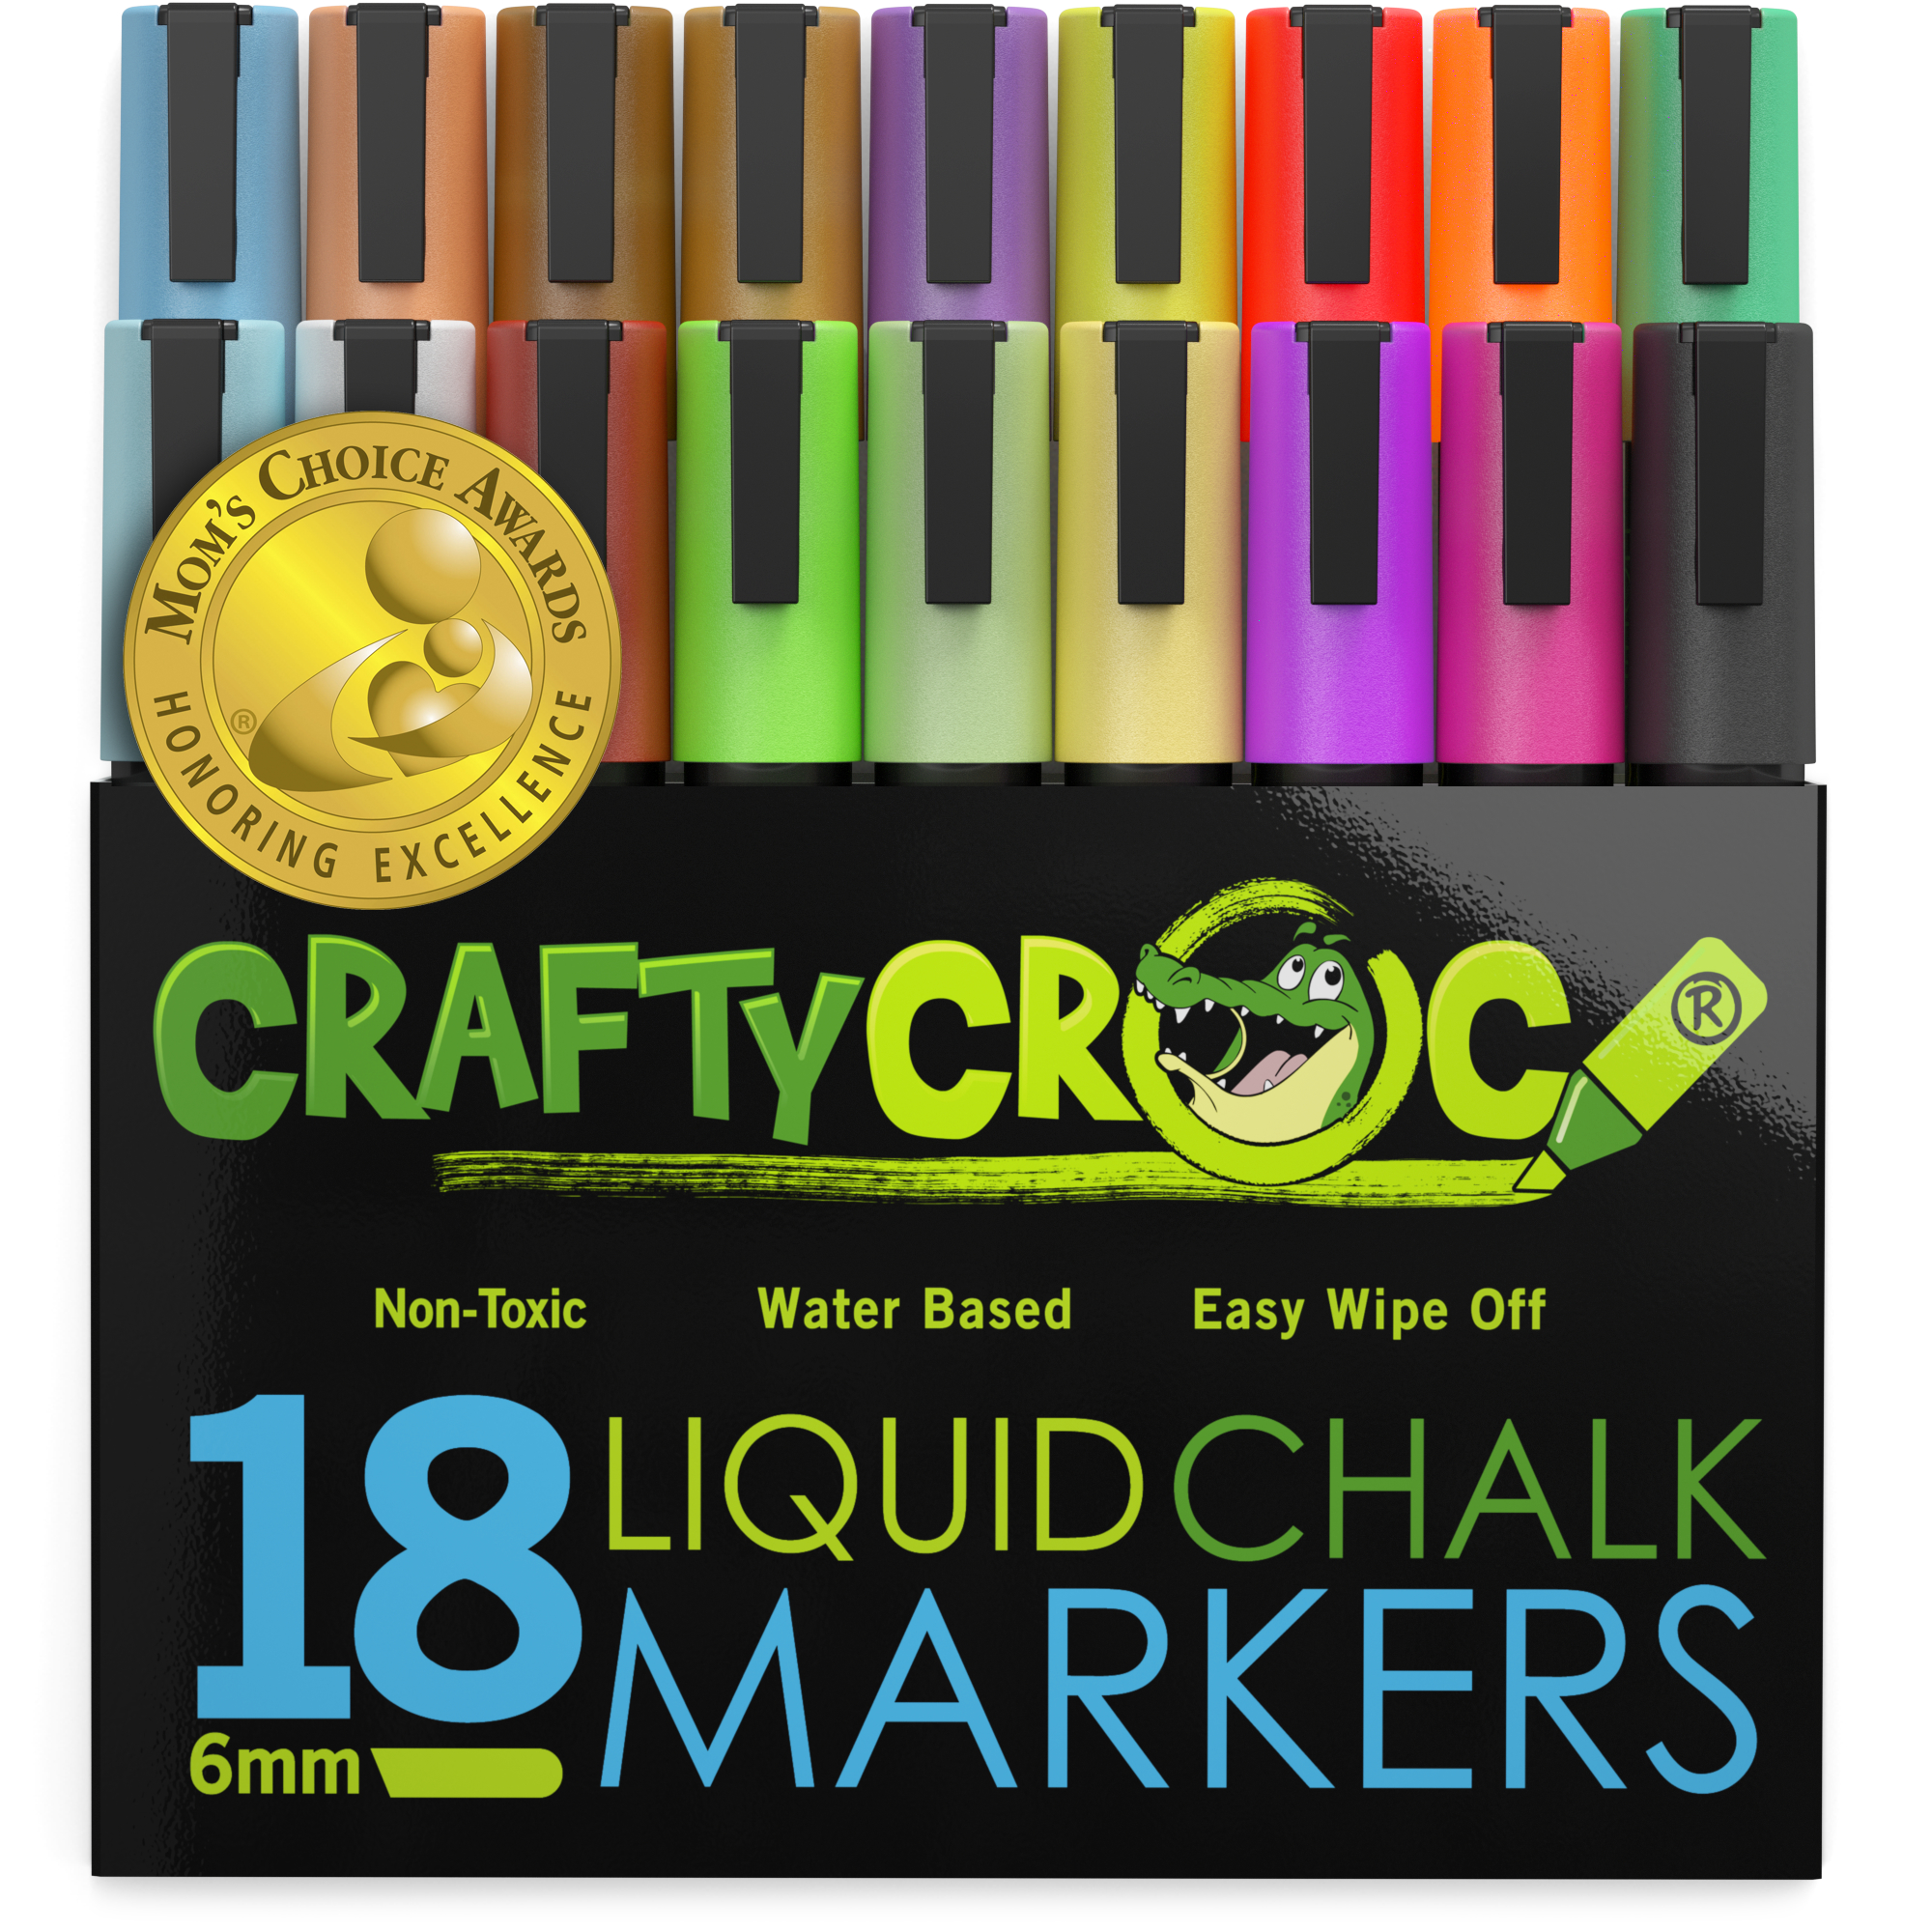 Crafty Croc Liquid Chalk Markers, Bright Neon and Earth Tone Colors, 18 Jumbo Pack